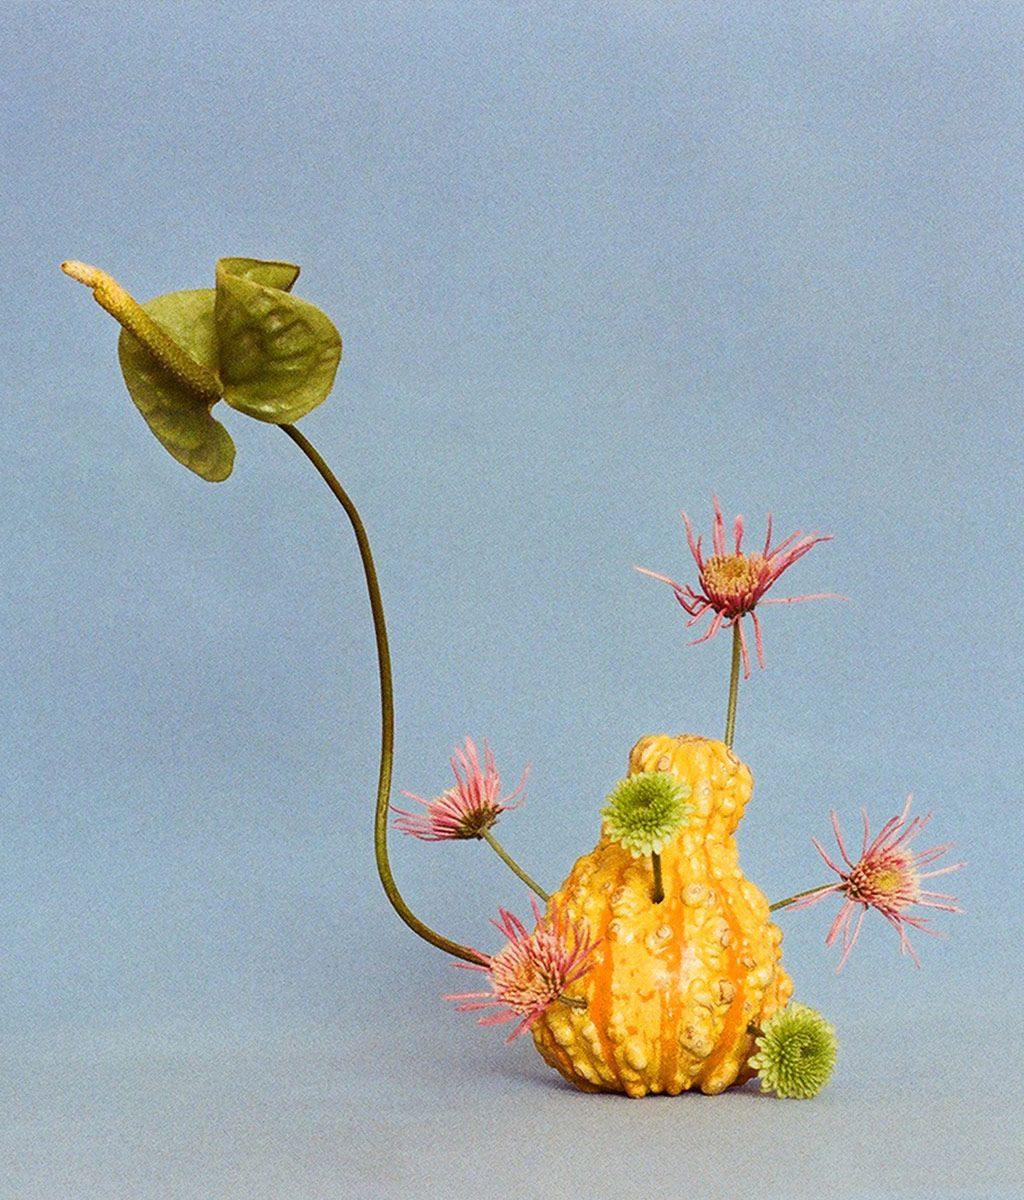 Freakebana: The New, Ugly-Cool Style of Arranging Flowers